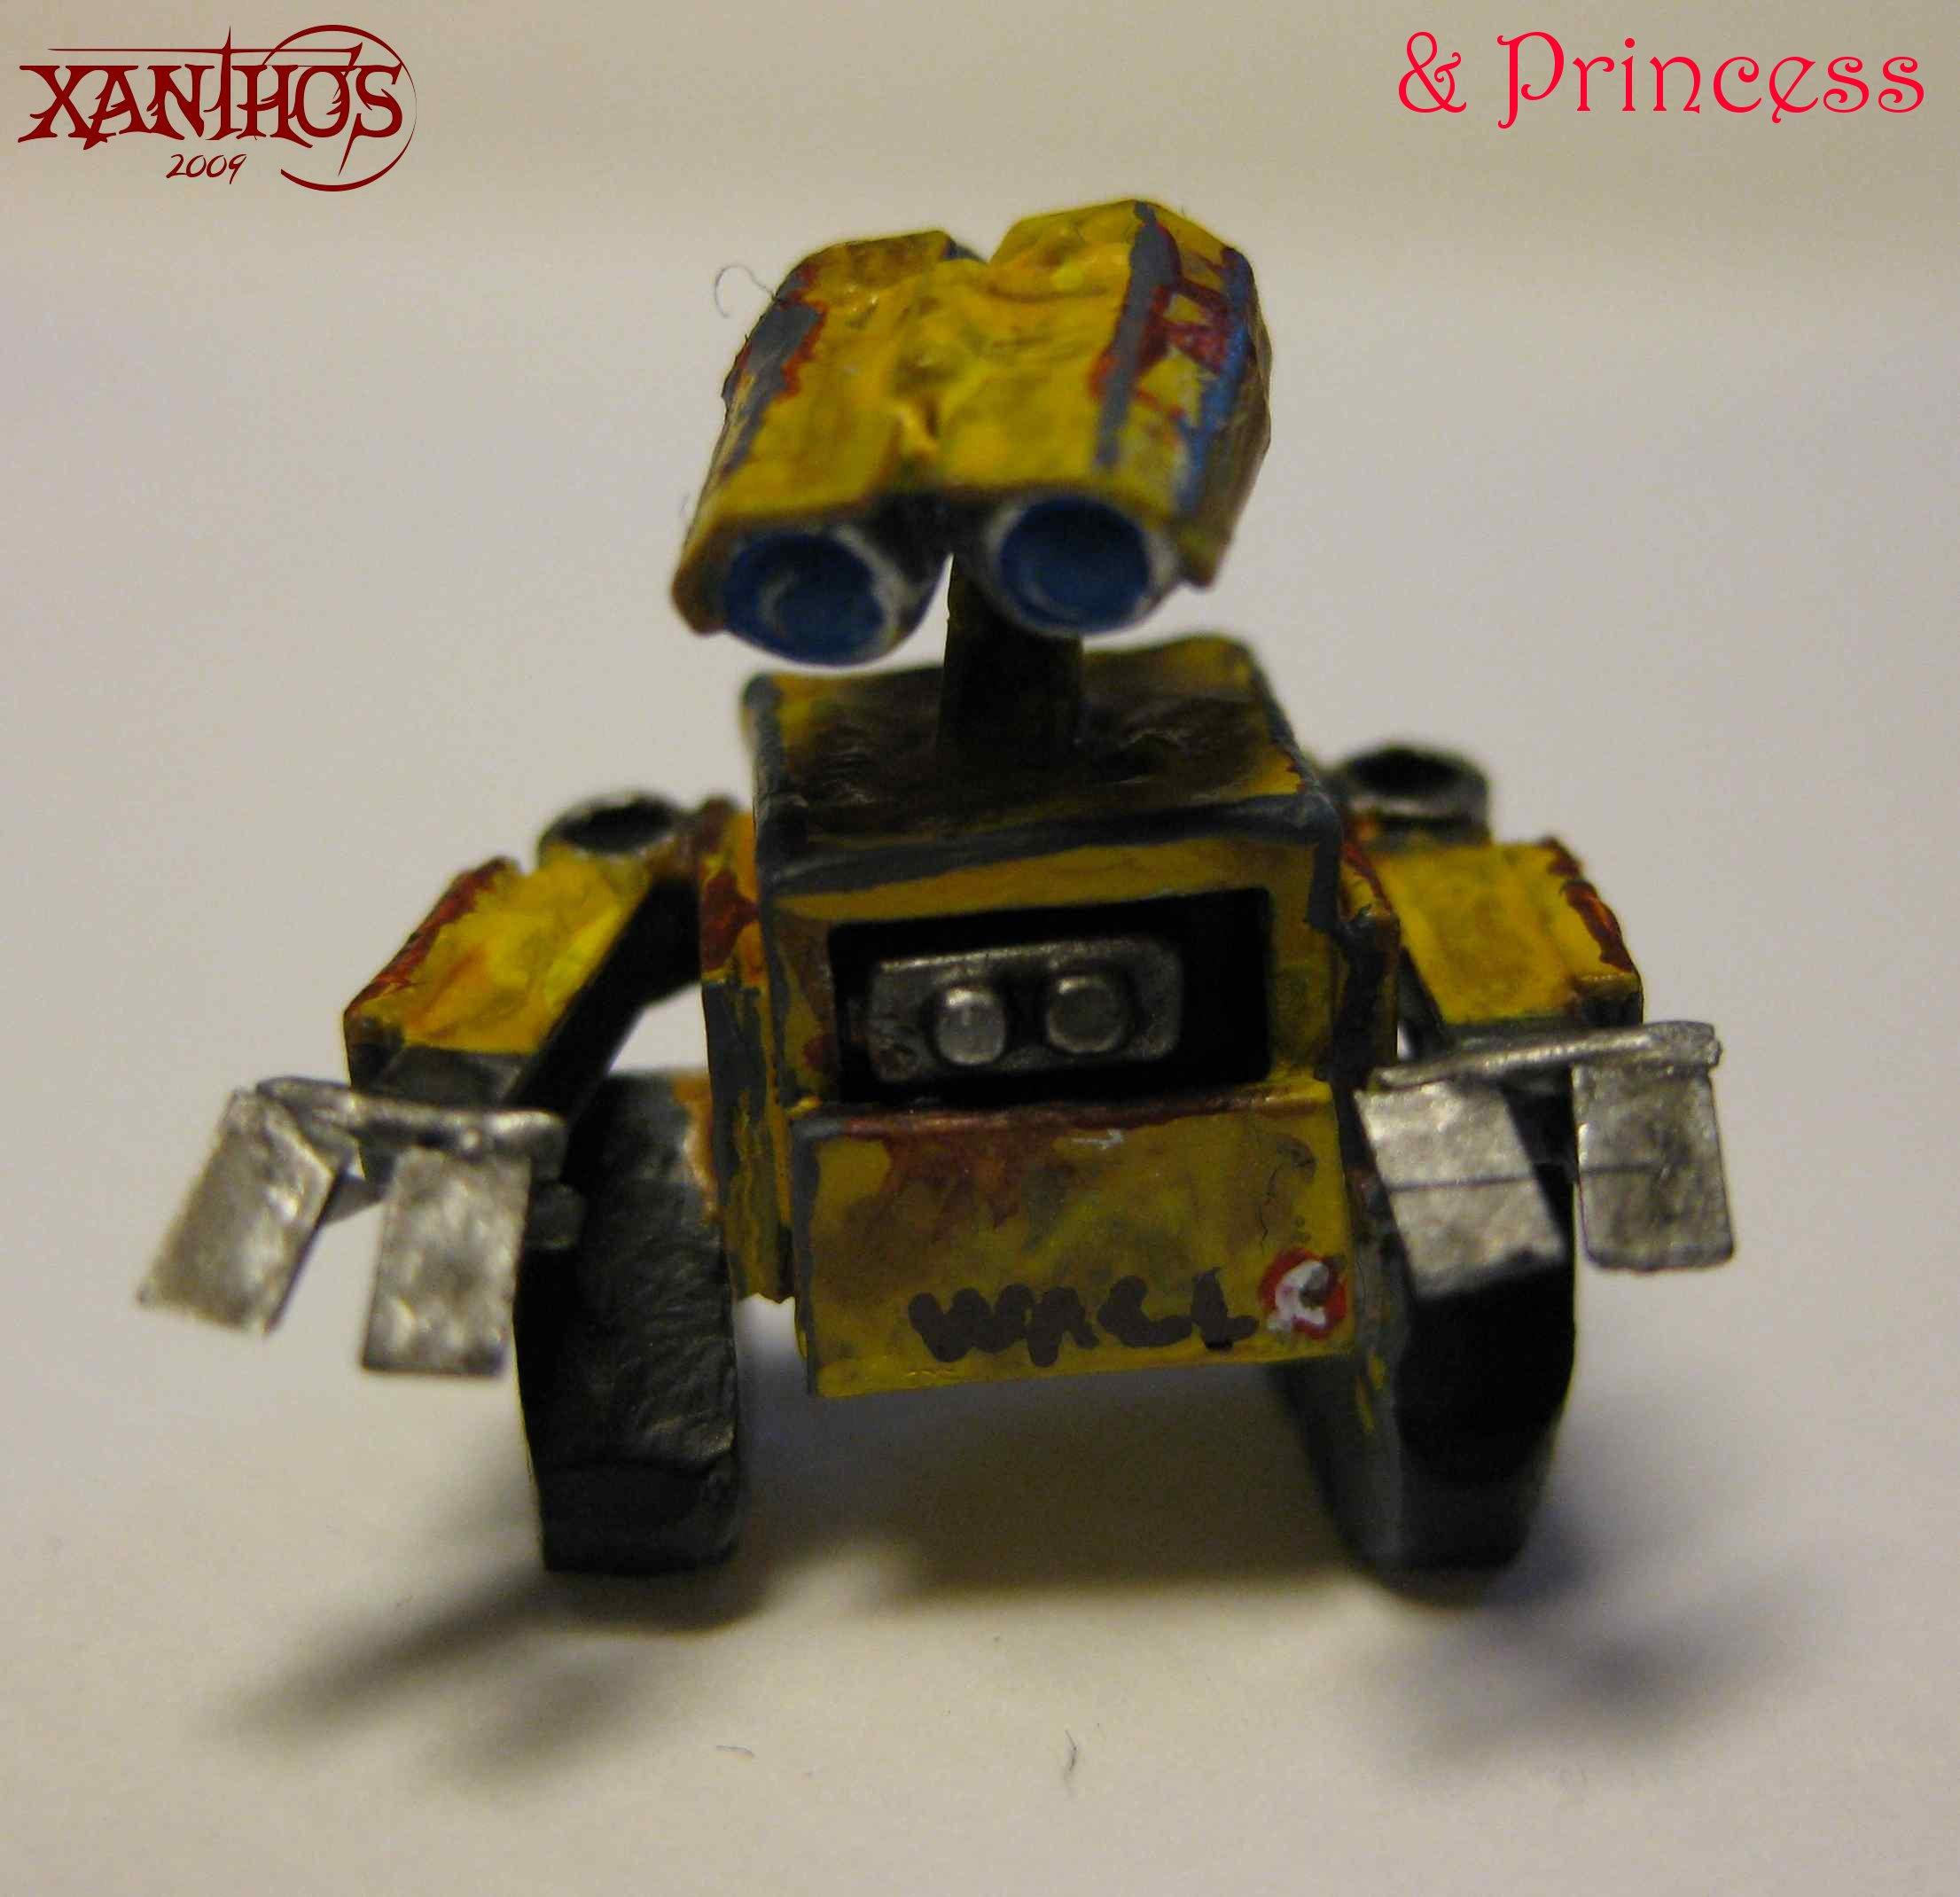 Wall-e, Wall-E without his base. Just showing off the paintjob on him